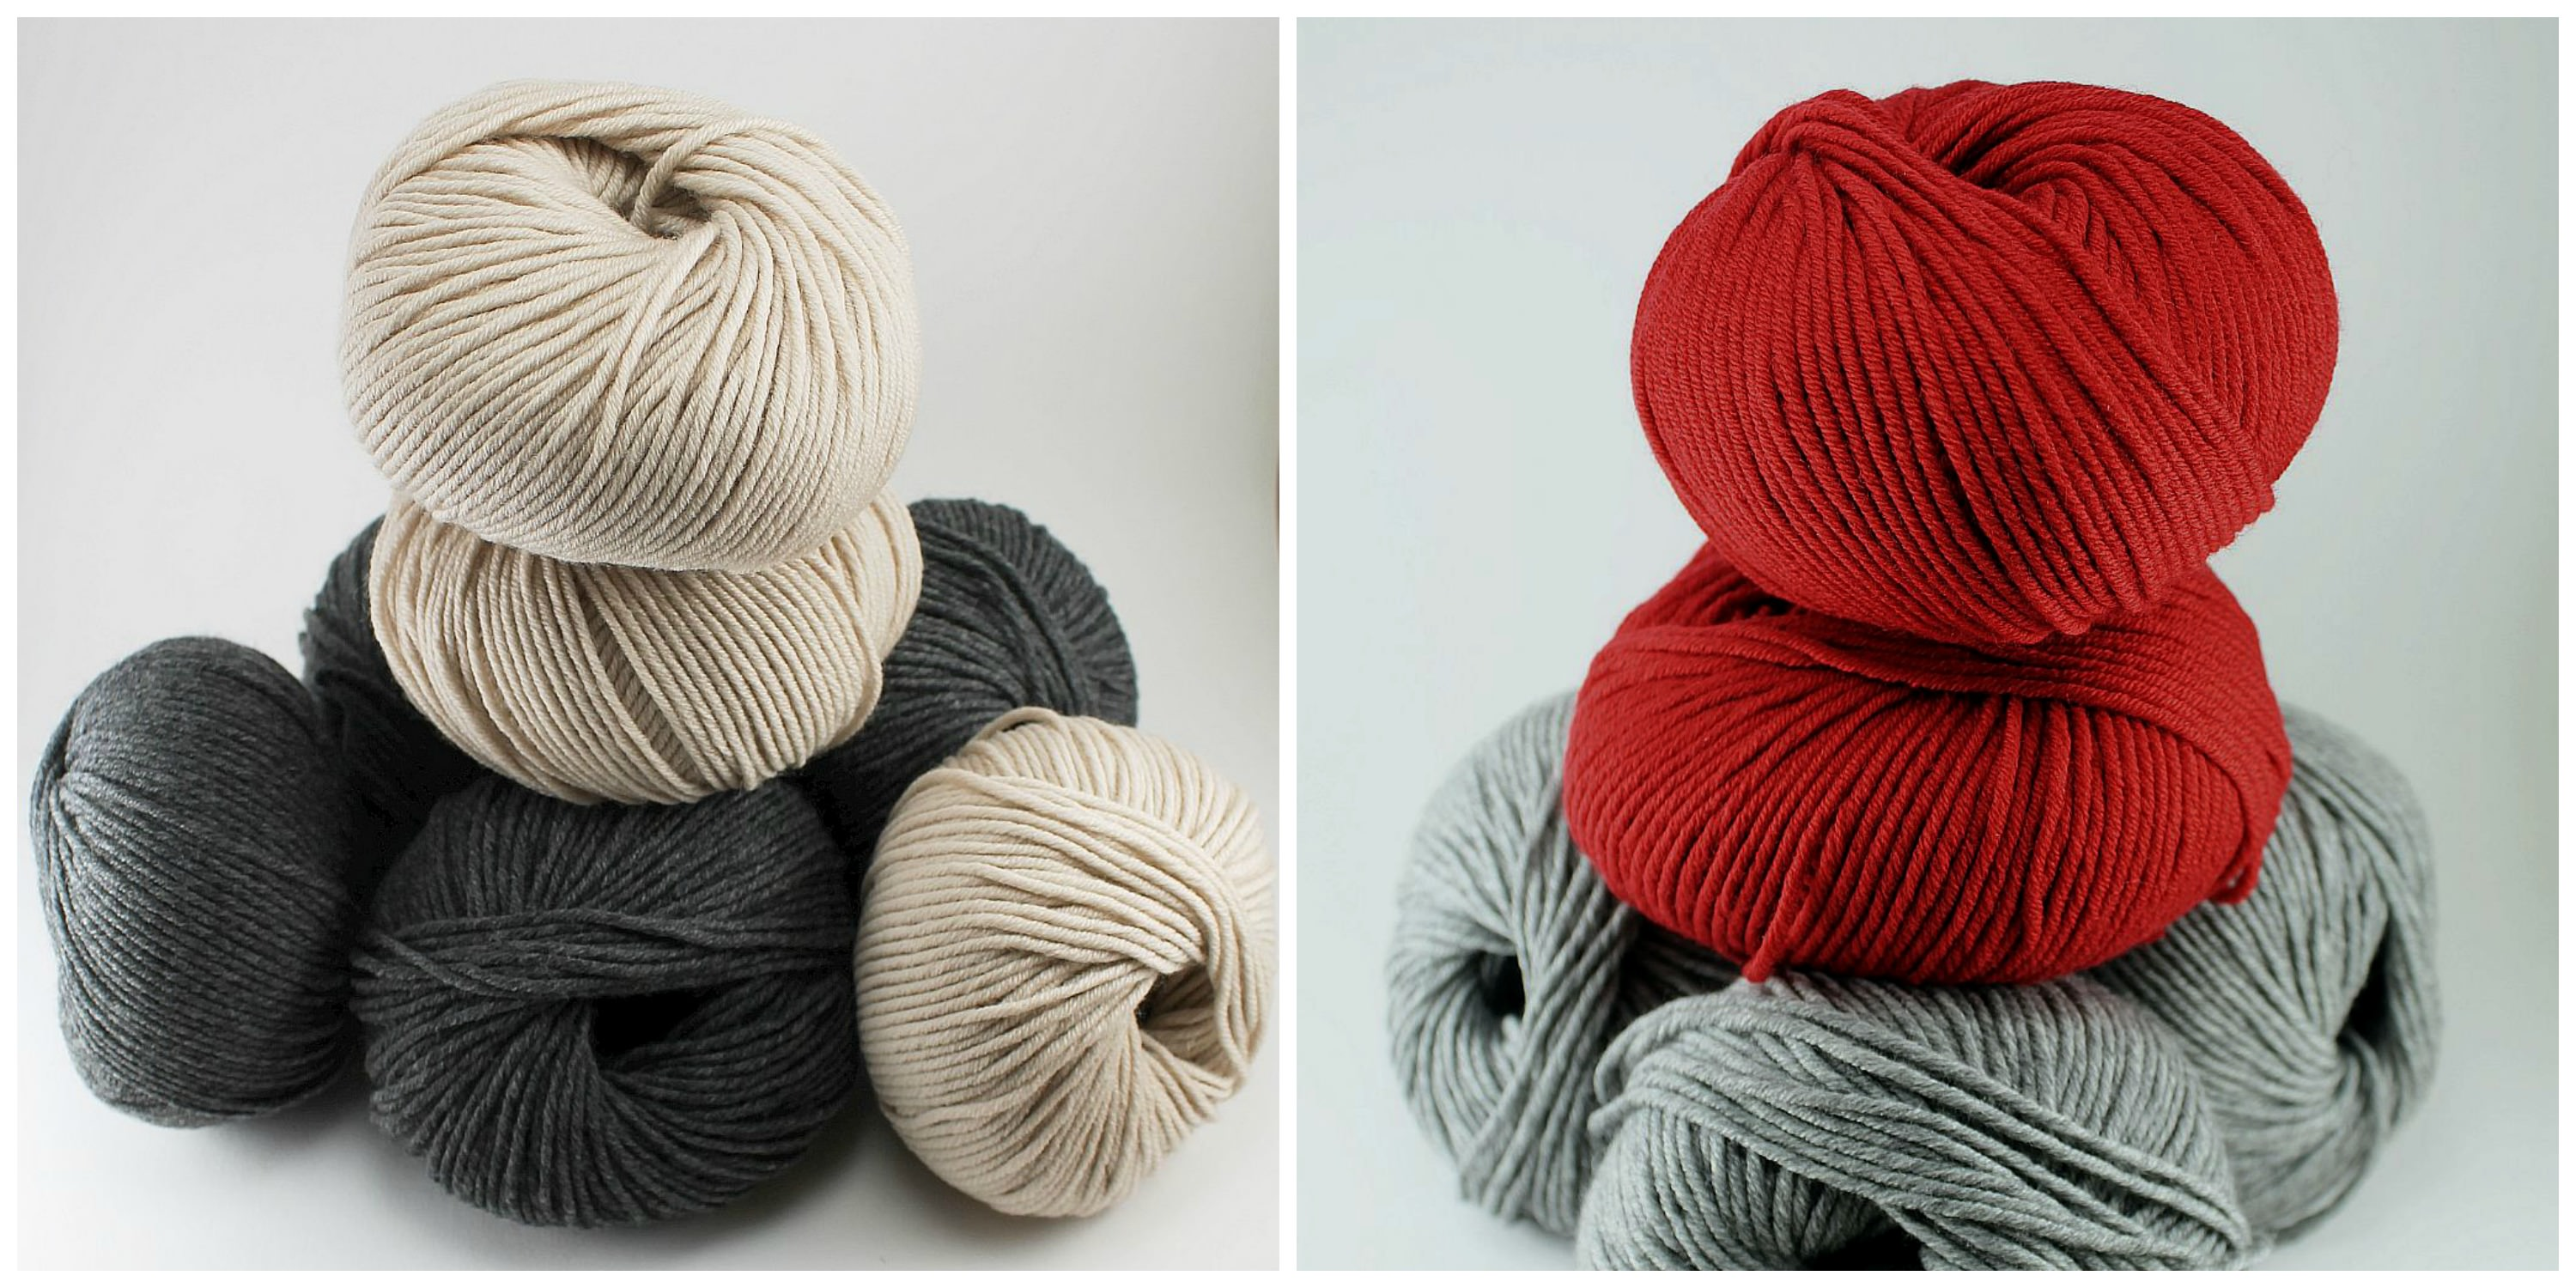 Merino Wollpaket Superkit Advents Knitalong schoenstricken.de